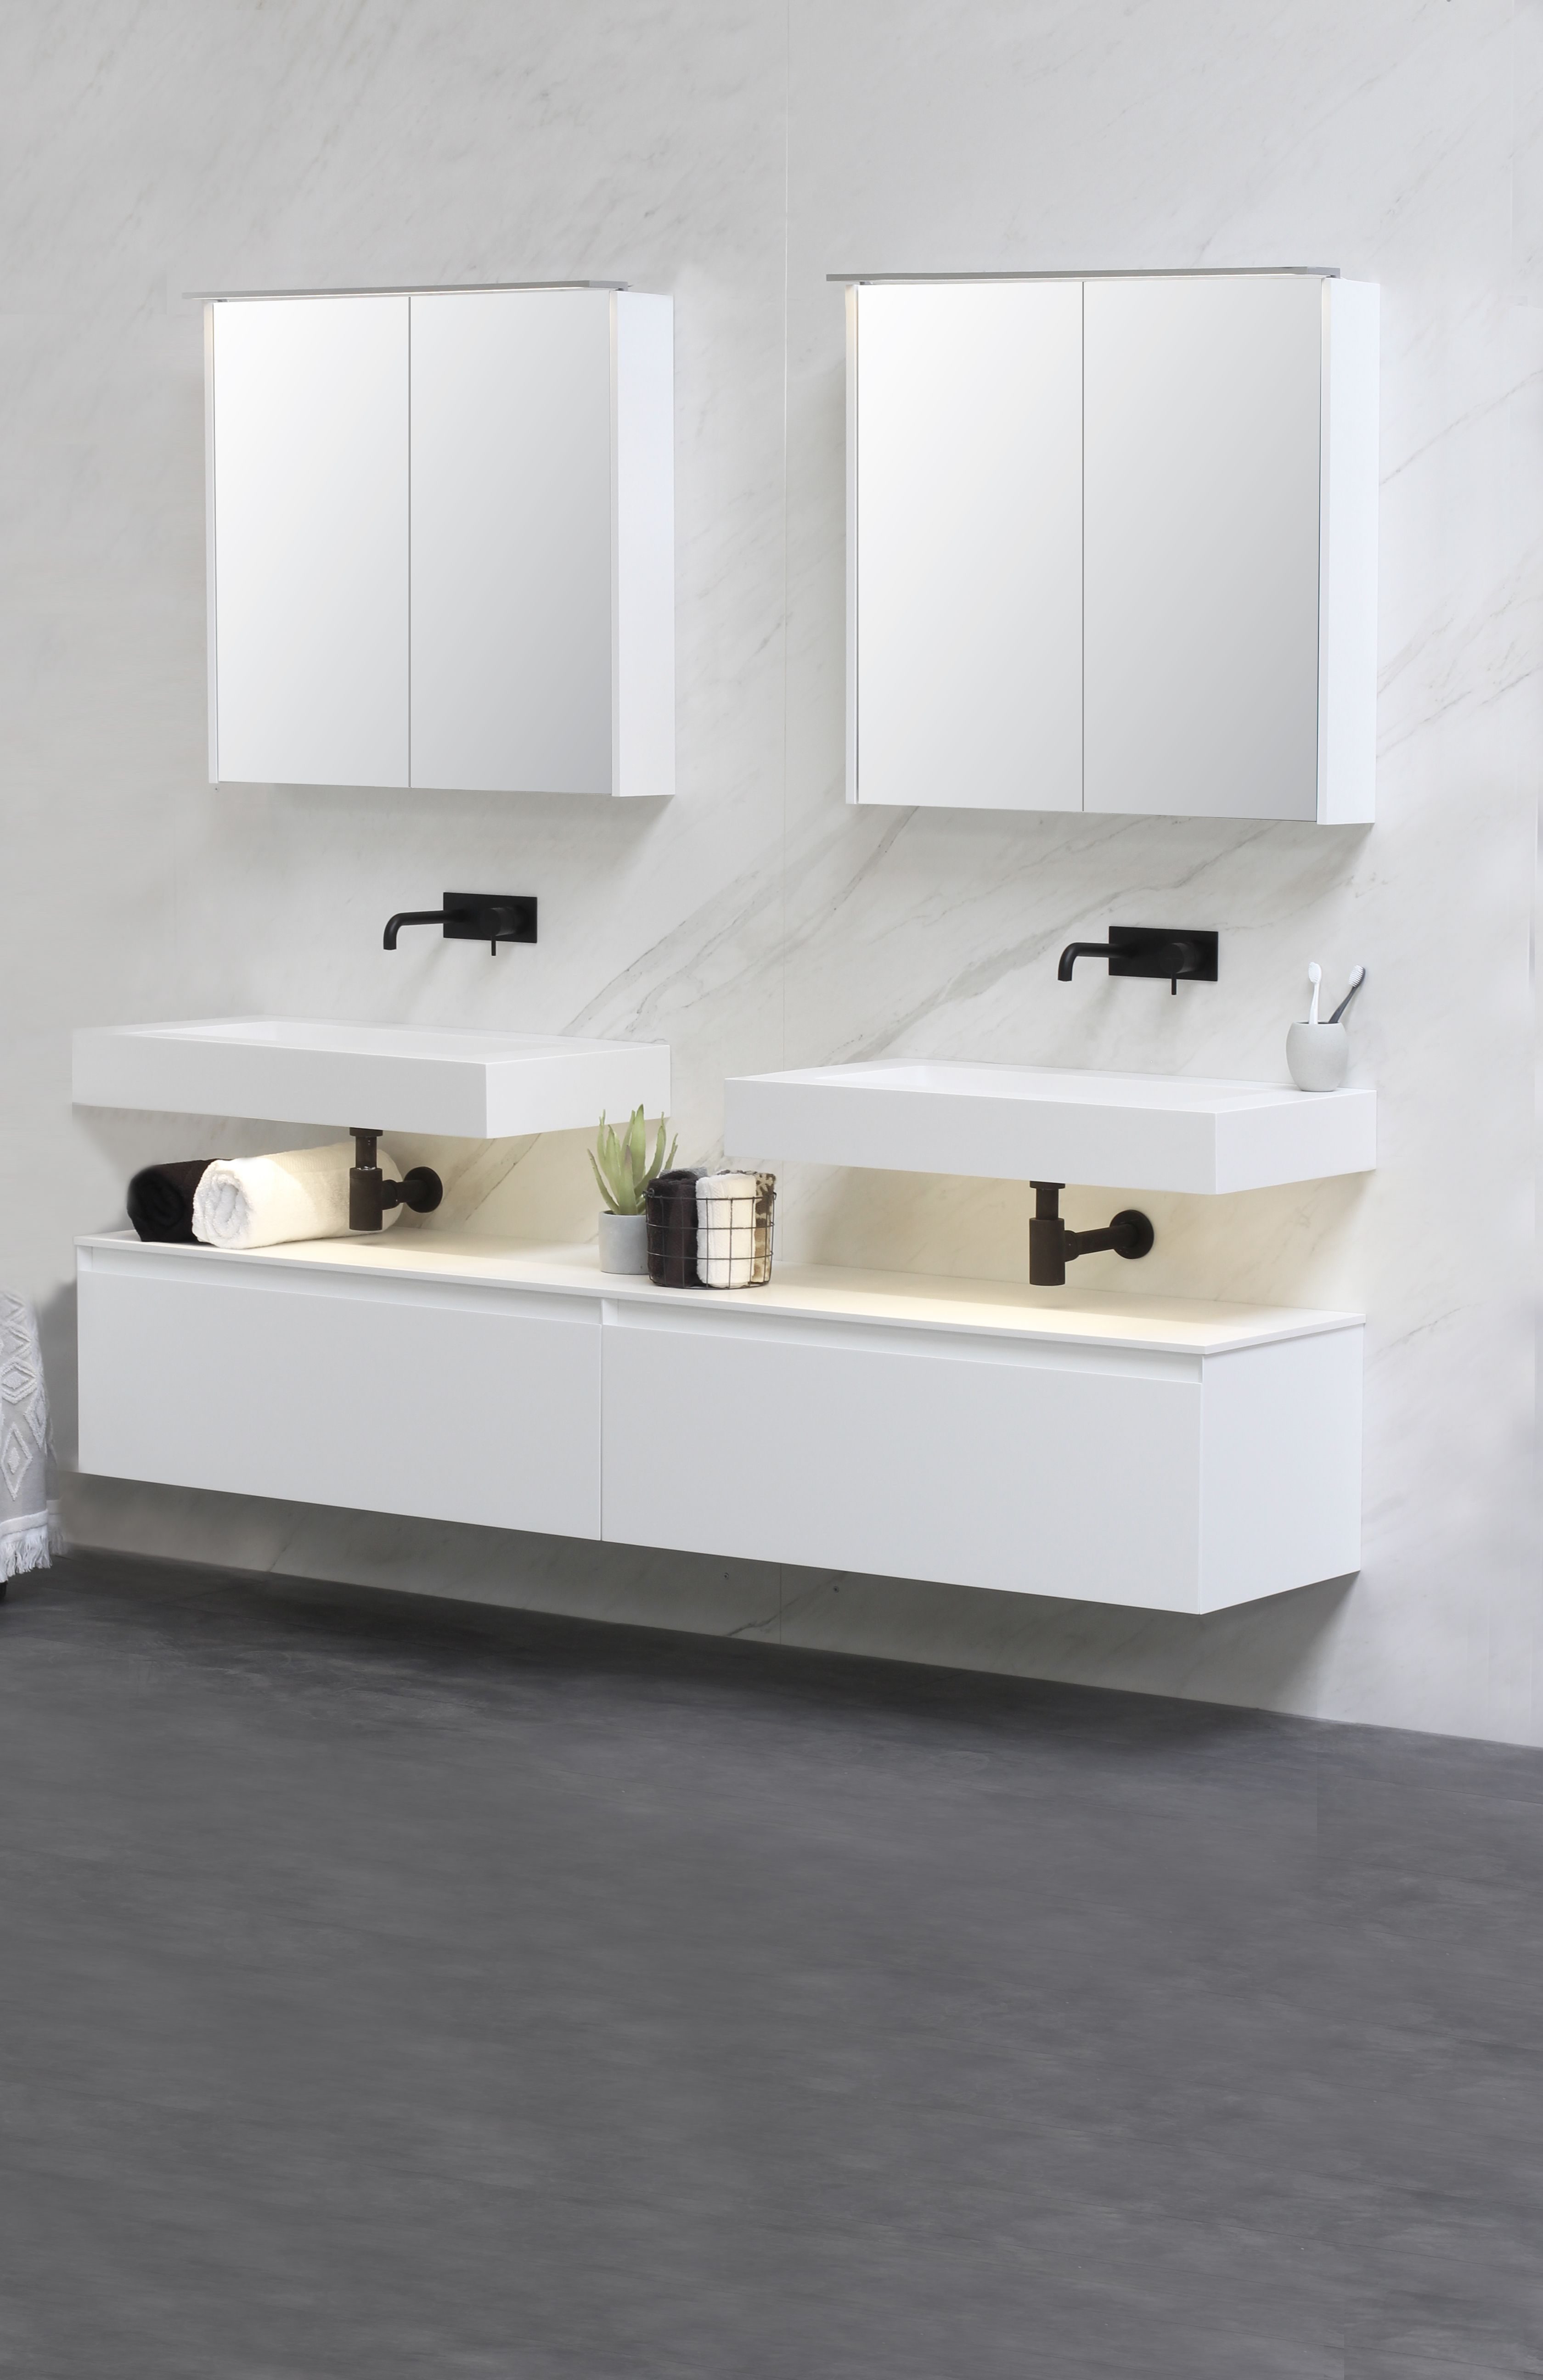 Bliss E\'viva - badkamer - bathroom - design - modern - clean - white ...